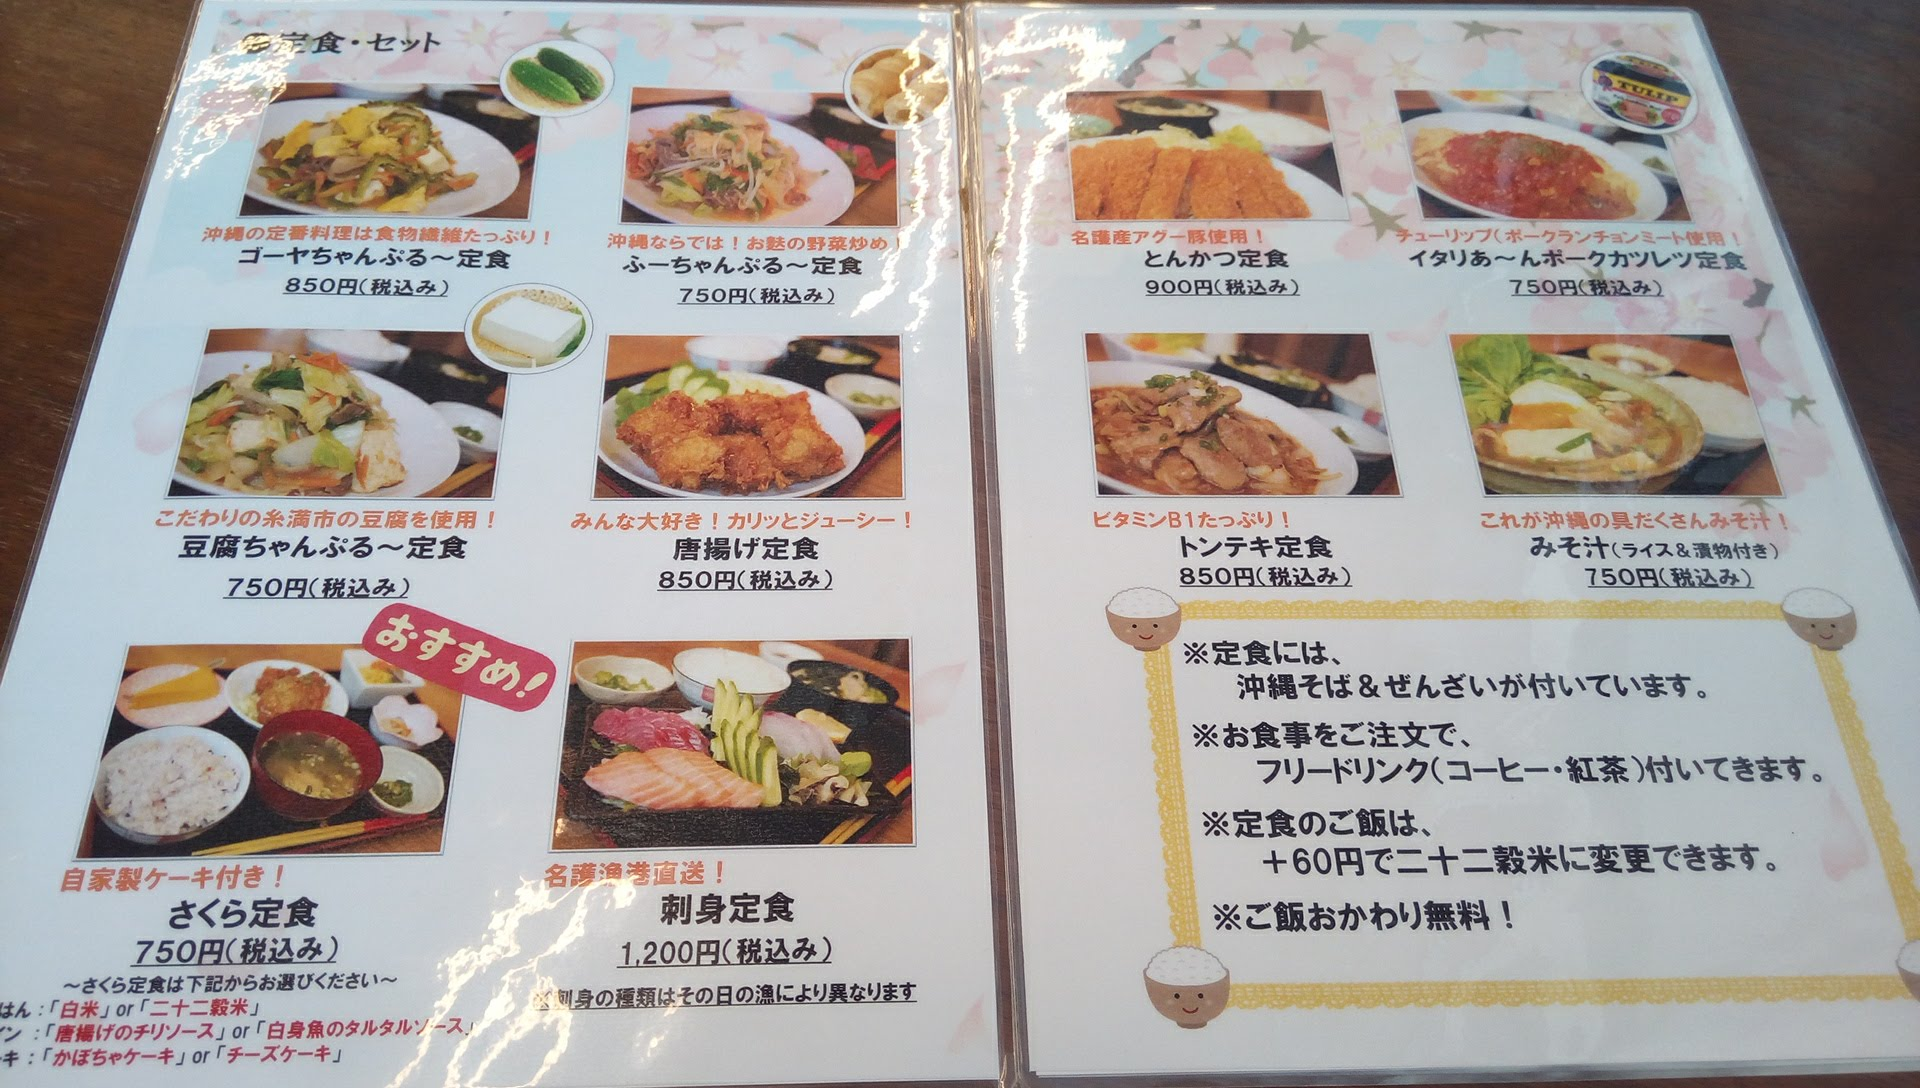 the menu of Sakura dining hall 1